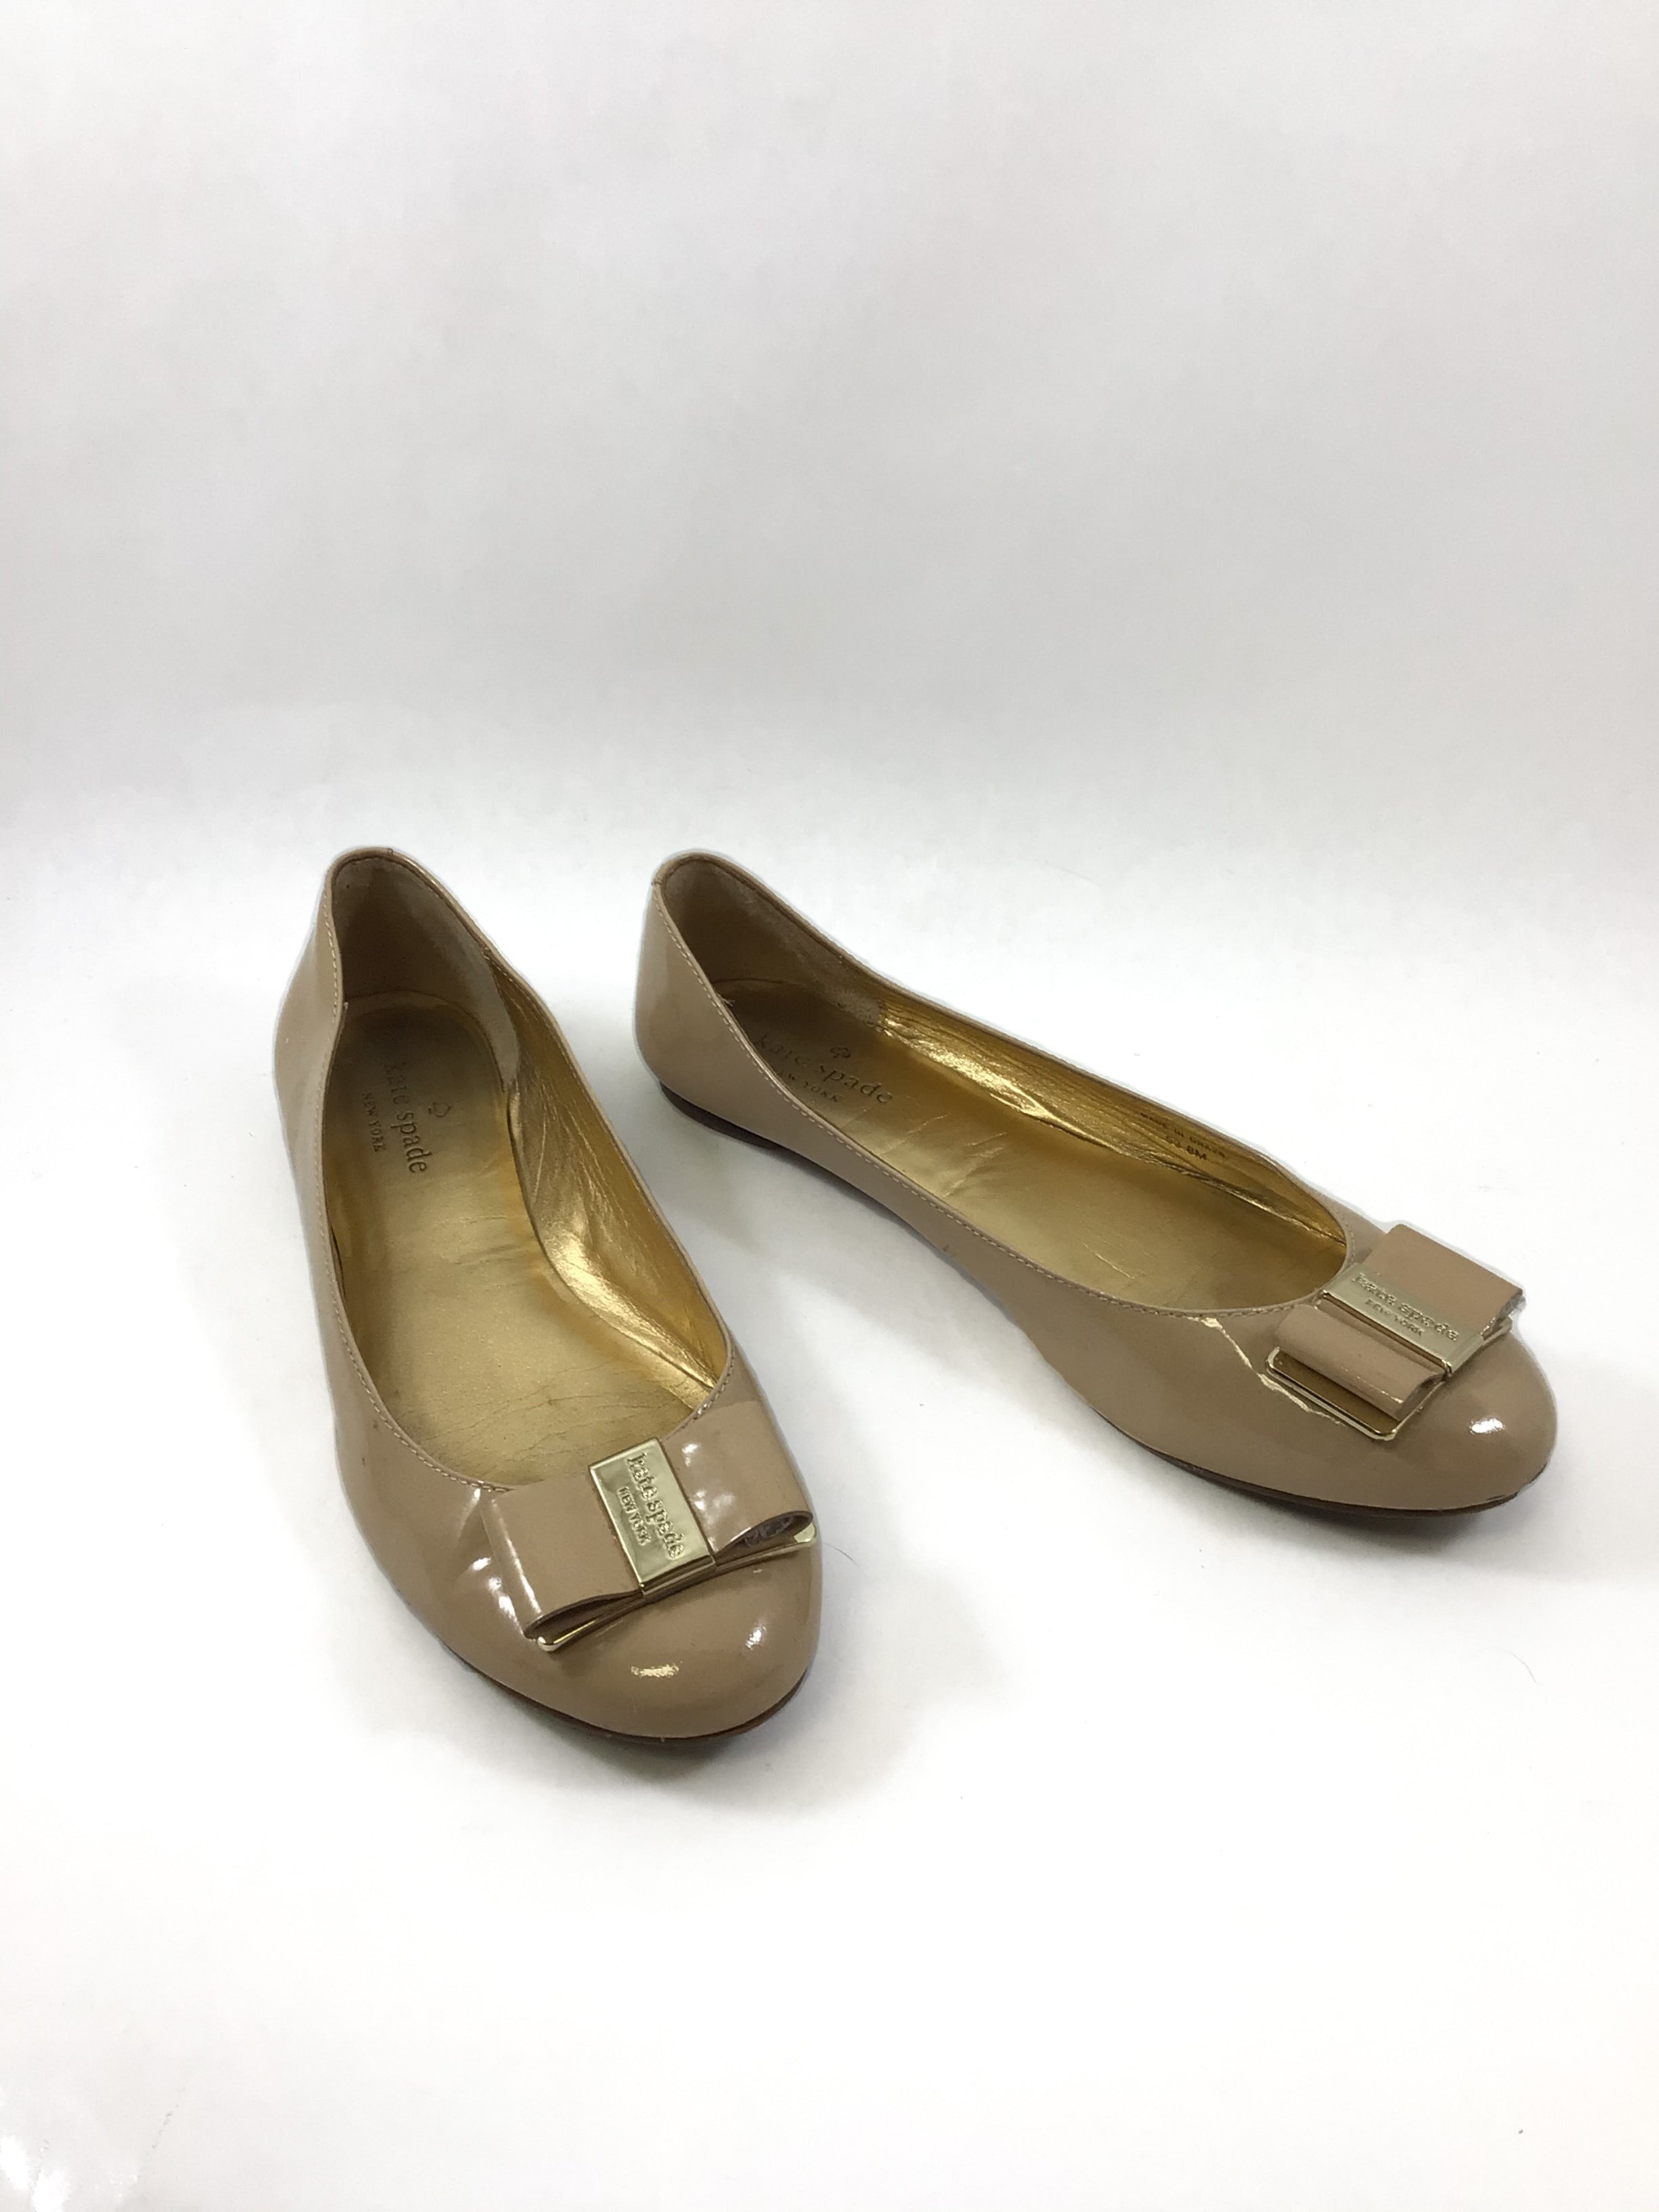 Primary Photo - BRAND: KATE SPADE <BR>STYLE: SHOES FLATS <BR>COLOR: NUDE <BR>SIZE: 8 <BR>SKU: 213-213135-6240